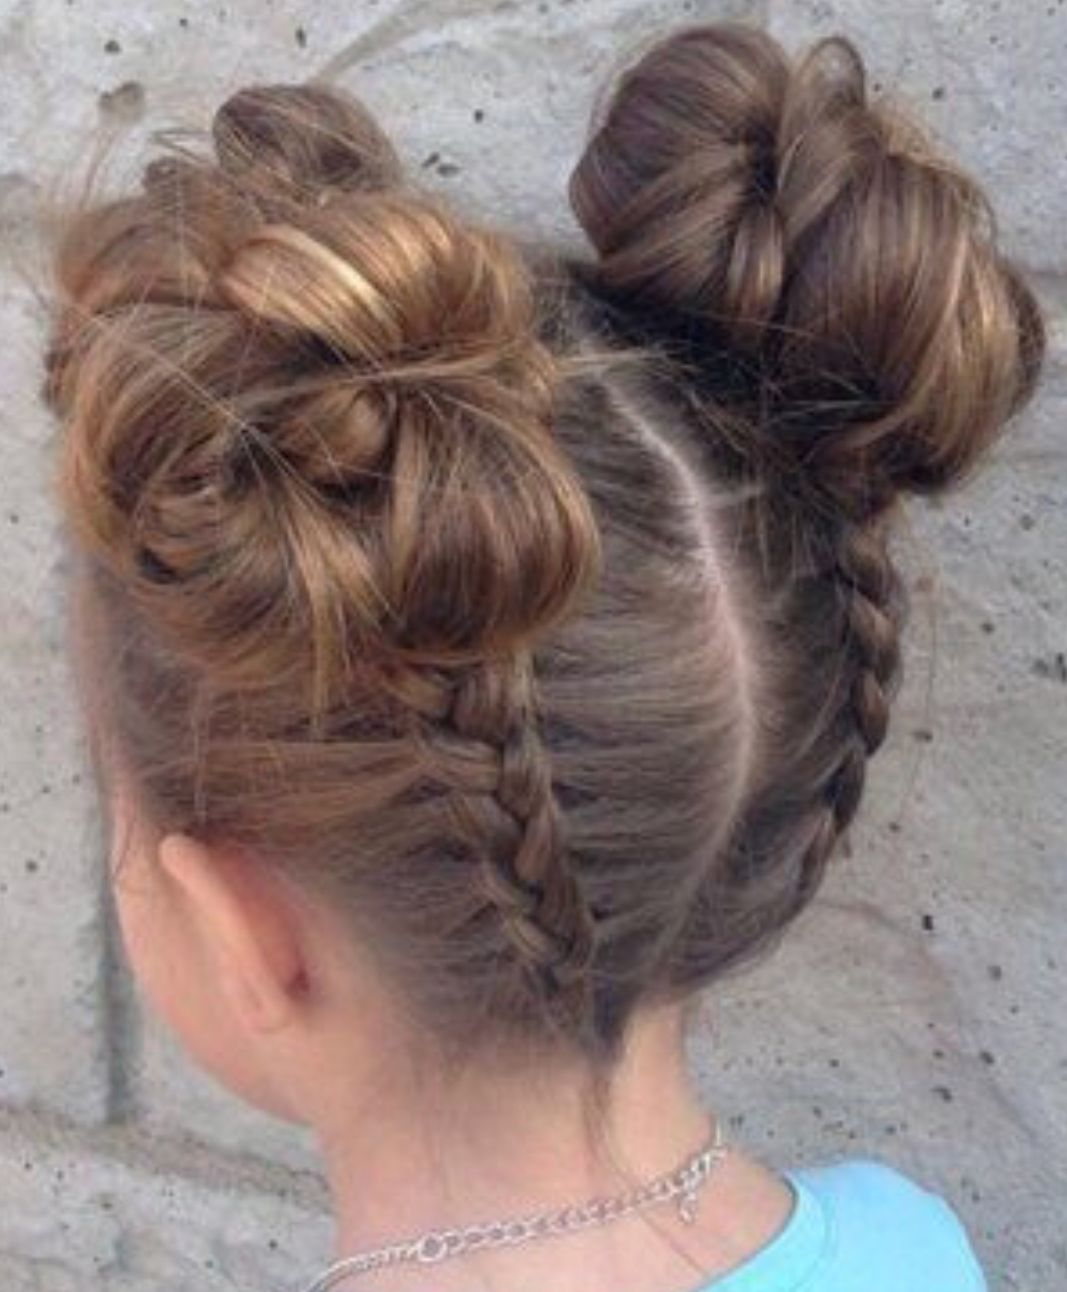 Hello R U Ready 4 Pageant Hair Thursday Cyndi Here I Was Recently Asked 2 Upload A Simple Quick Hairs Hair Styles Toddler Hairstyles Girl Kids Hairstyles